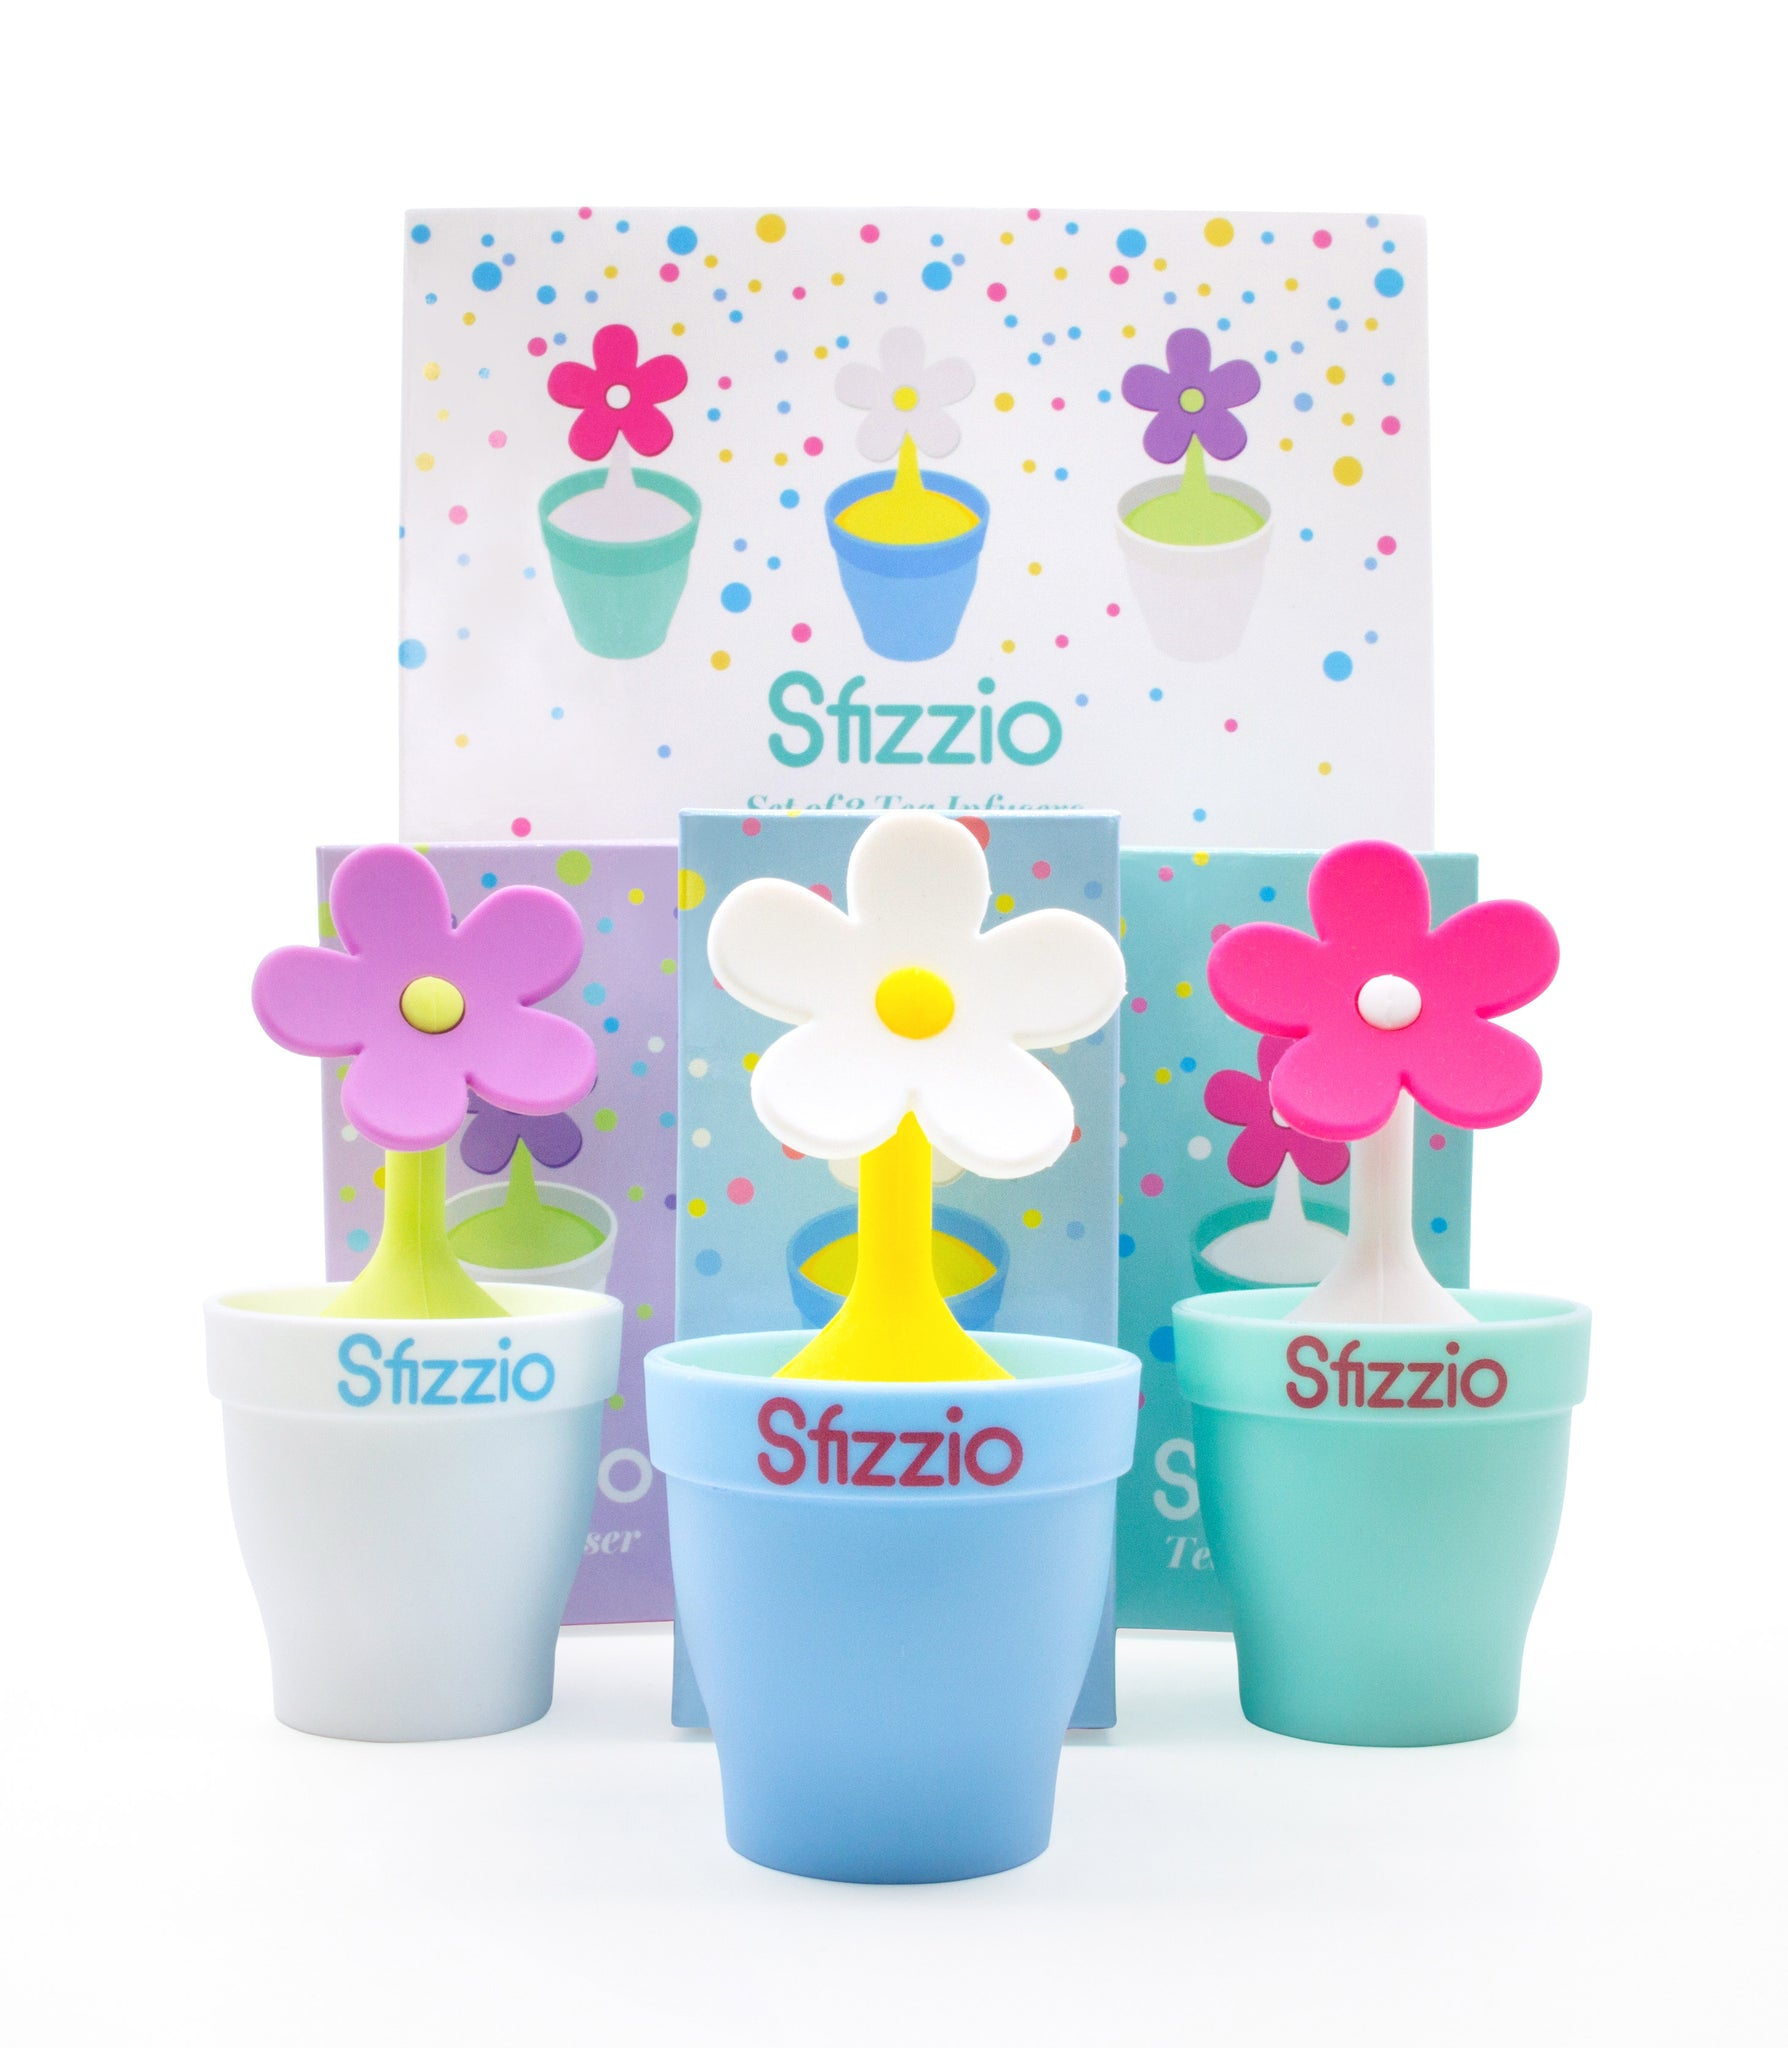 Sfizzio Set of 3 Daisy Tea Infusers with Flower Pot Drip Tray